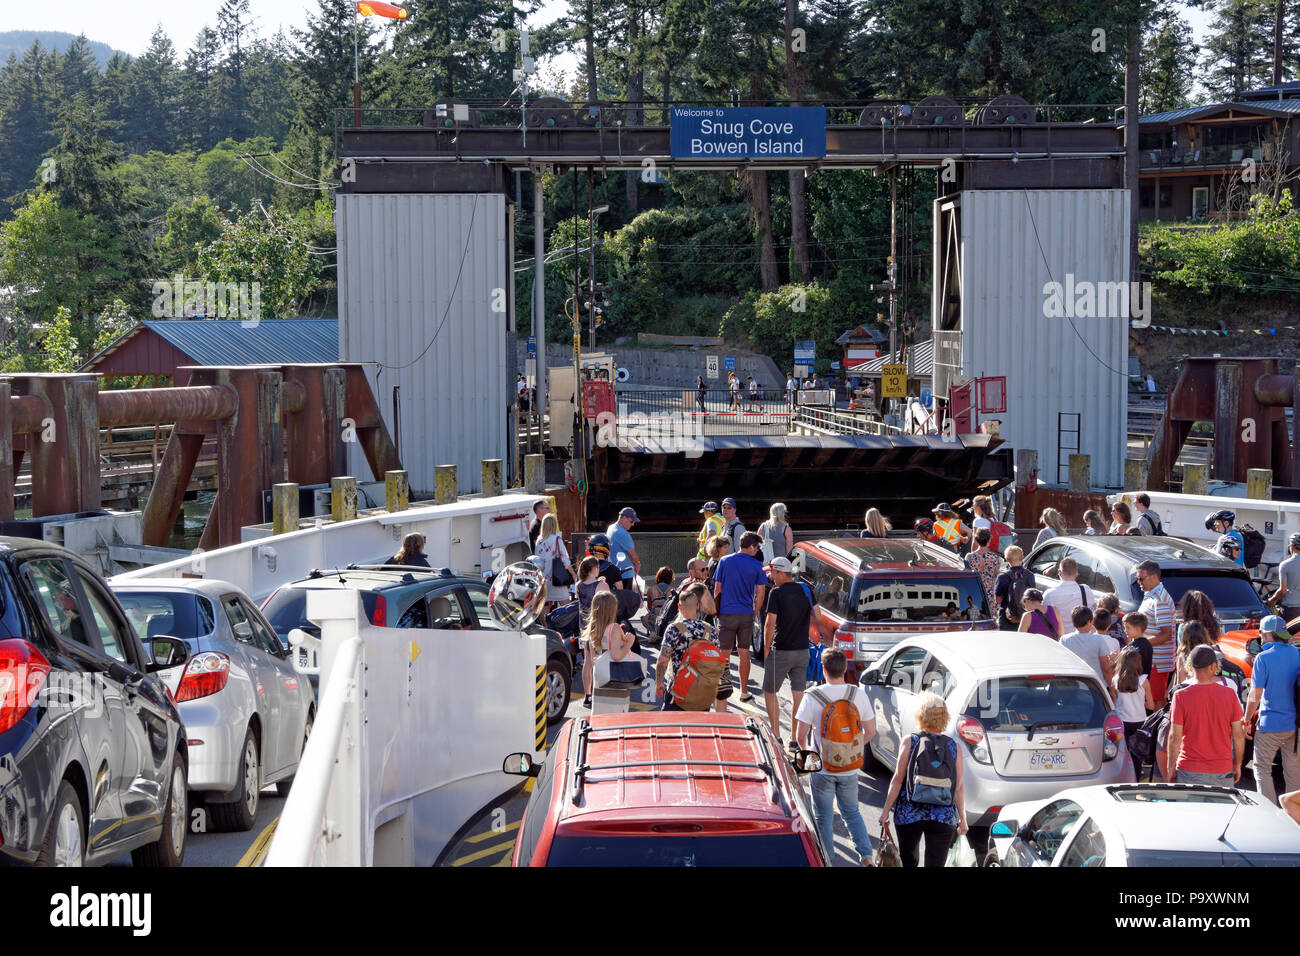 BC Ferries passenger and car ferry docking at the Snug Cover terminal on Bowen Island near Vancouver, British Columbia,, Canada - Stock Image